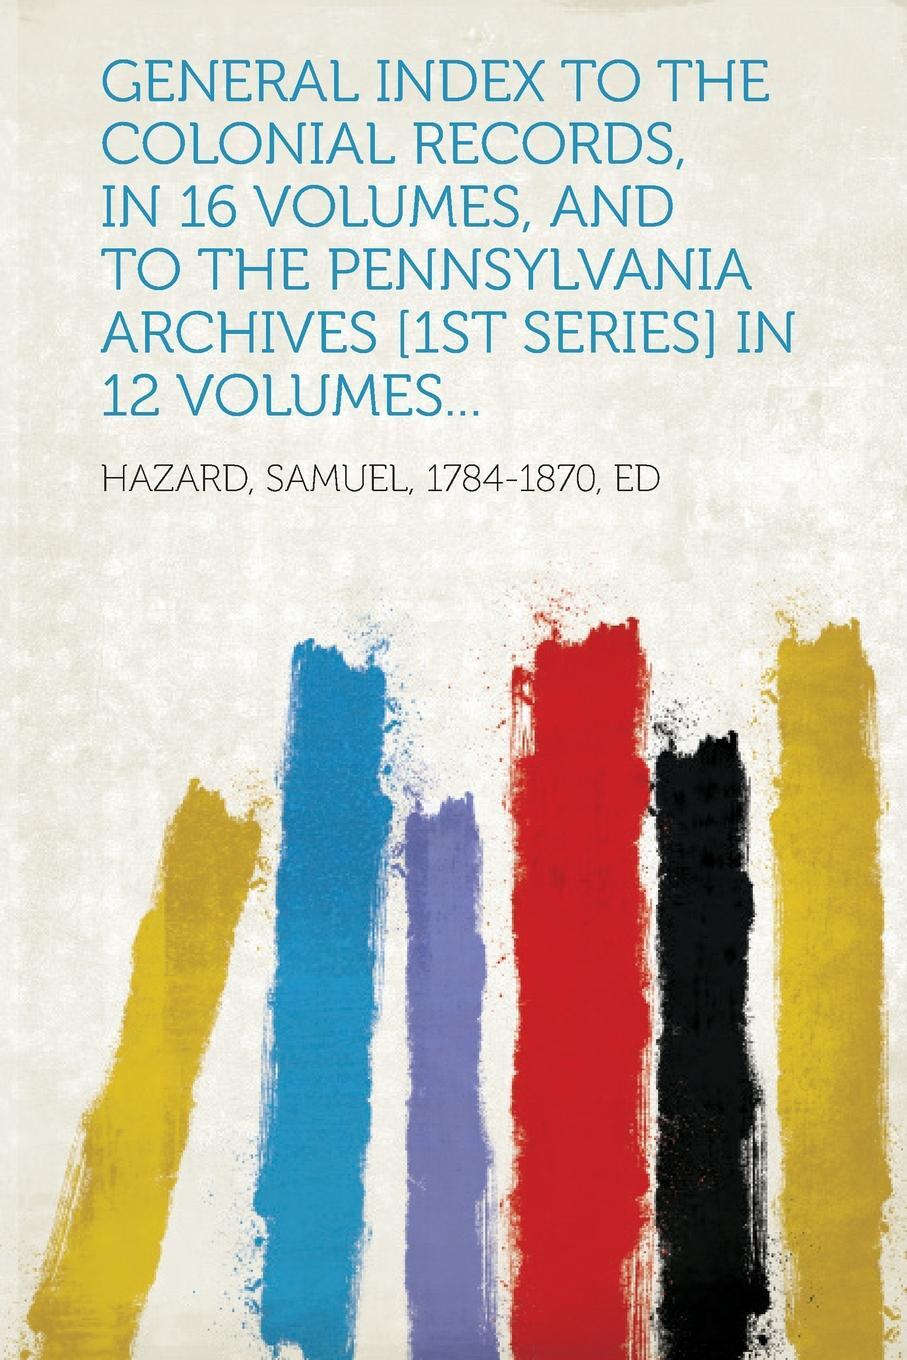 General Index to the Colonial Records, in 16 Volumes, and to the Pennsylvania Archives .1st Series. in 12 Volumes...